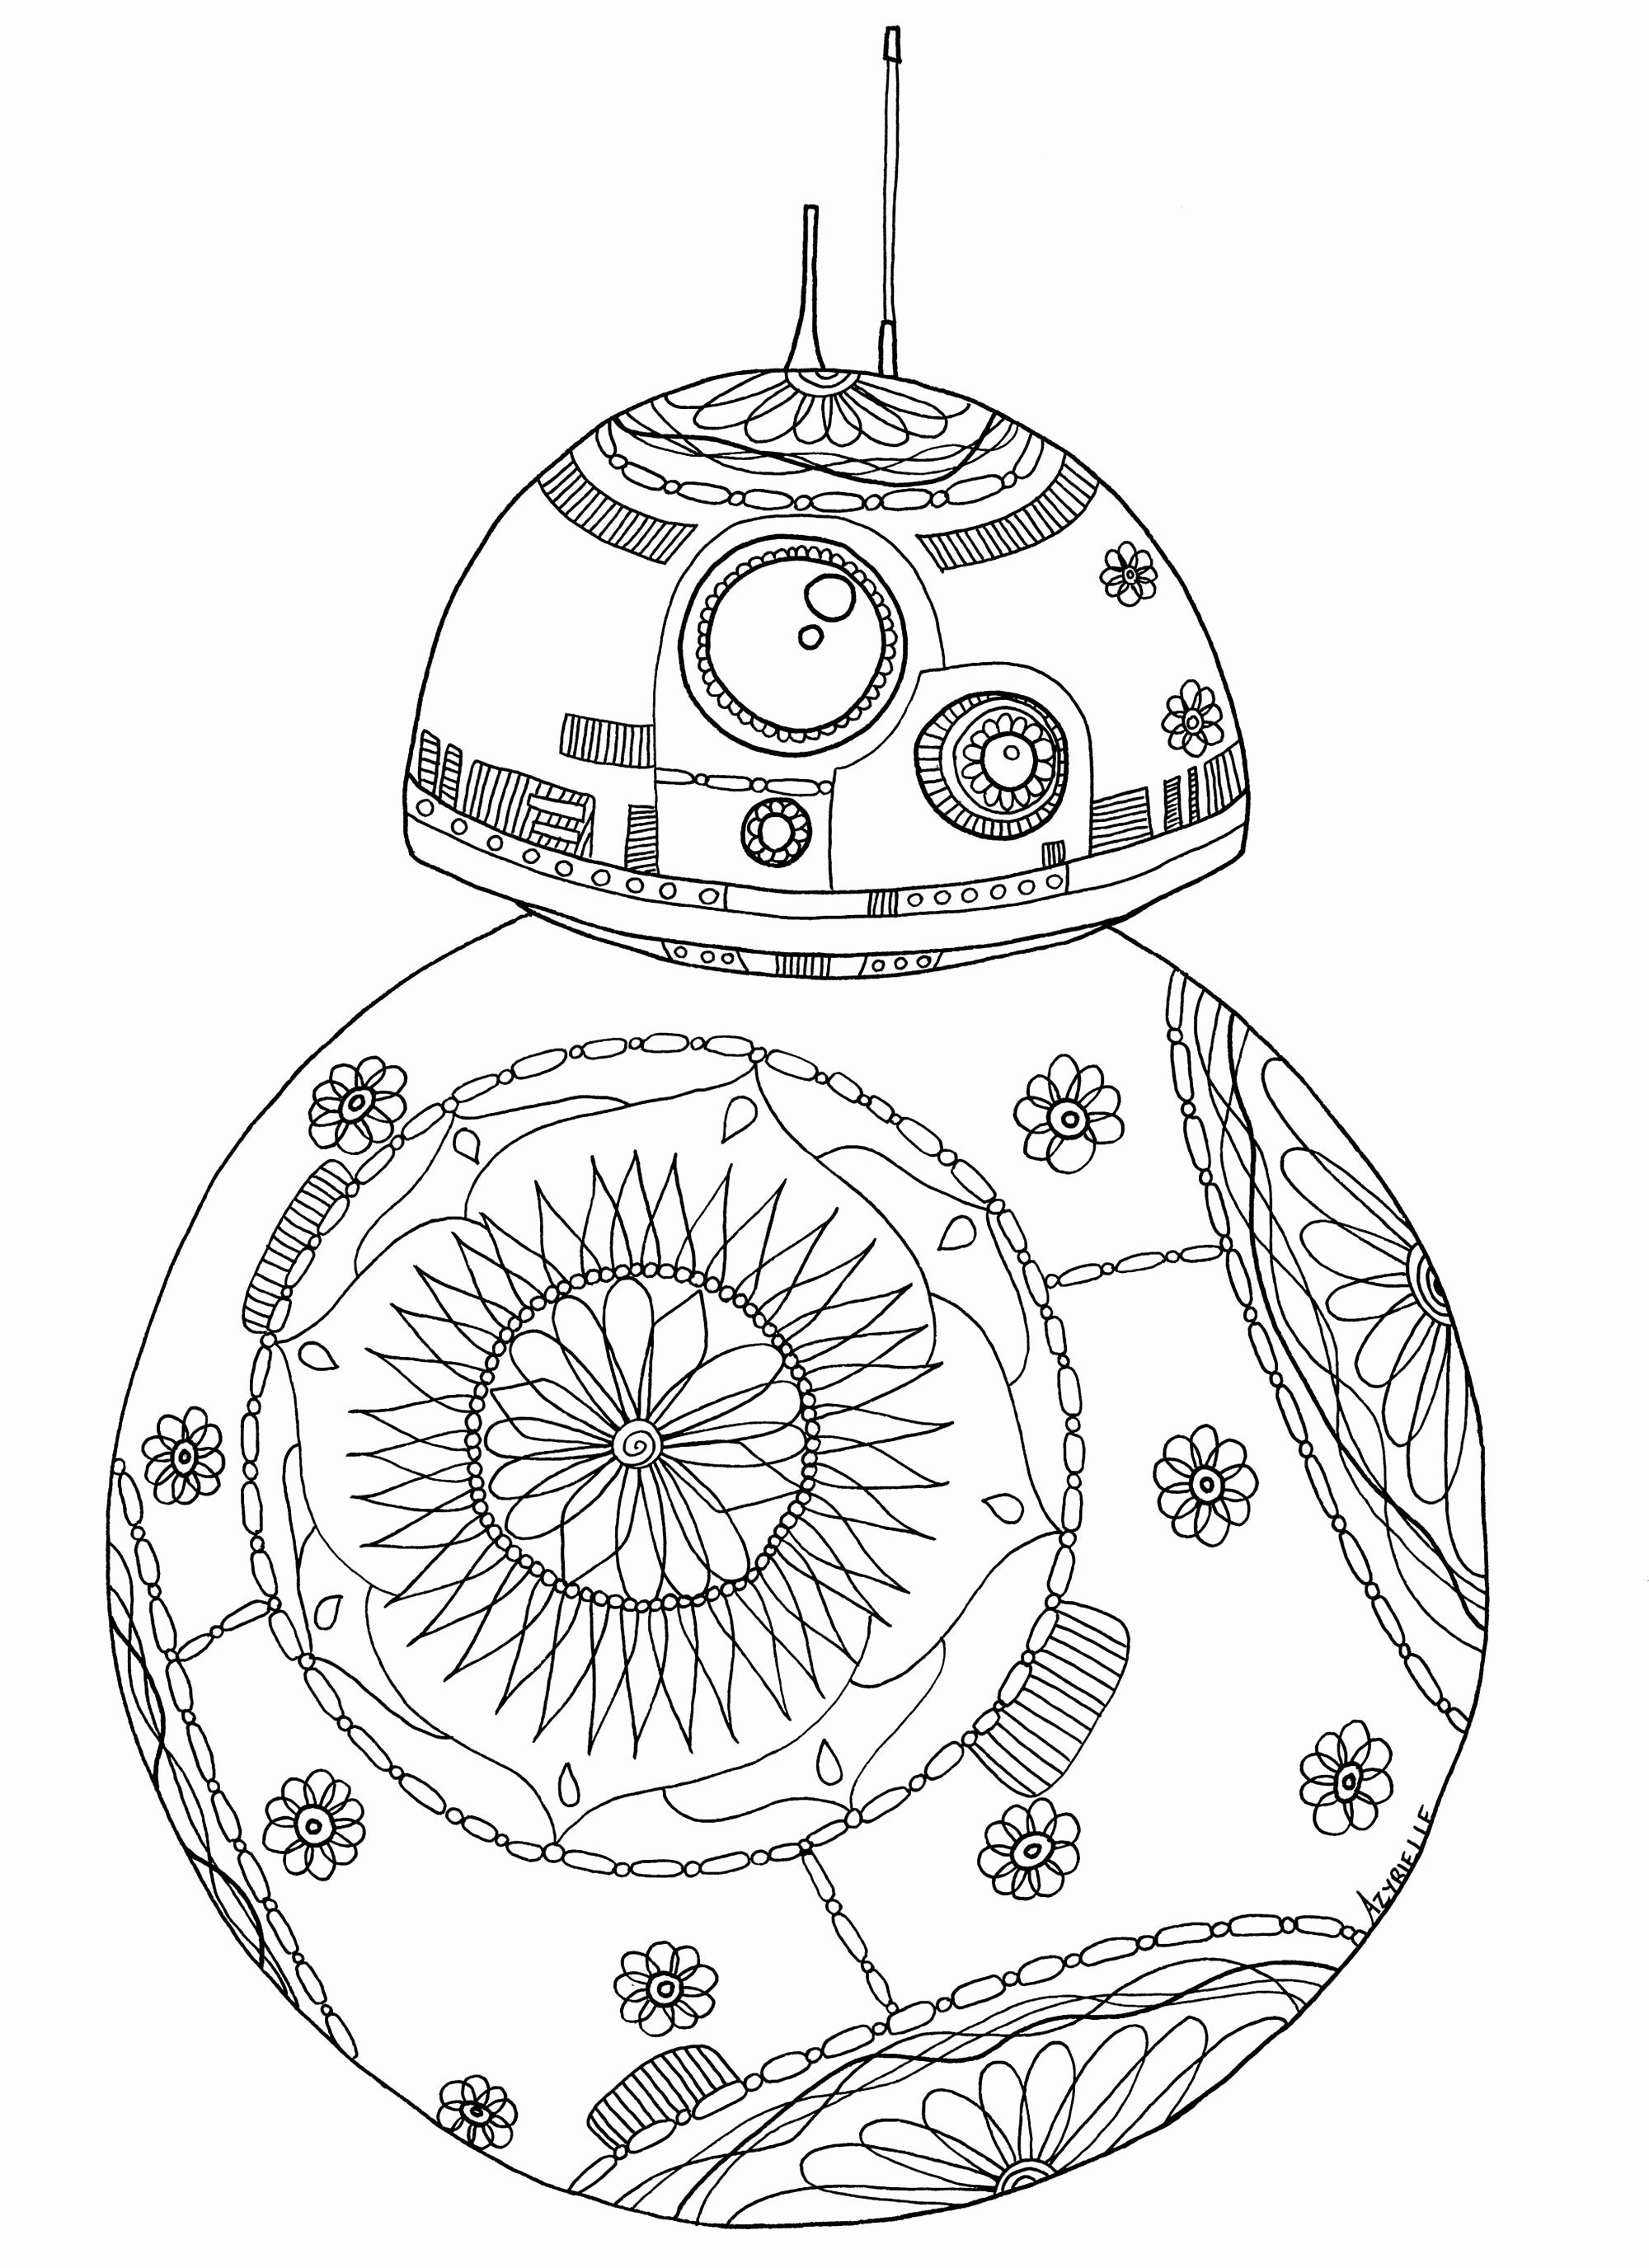 Rogue One Coloring Pages Inspirational Rogue Coloring Pages Sketch Coloring Page Cartoon Coloring Pages Superhero Coloring Pages Coloring Pages Inspirational